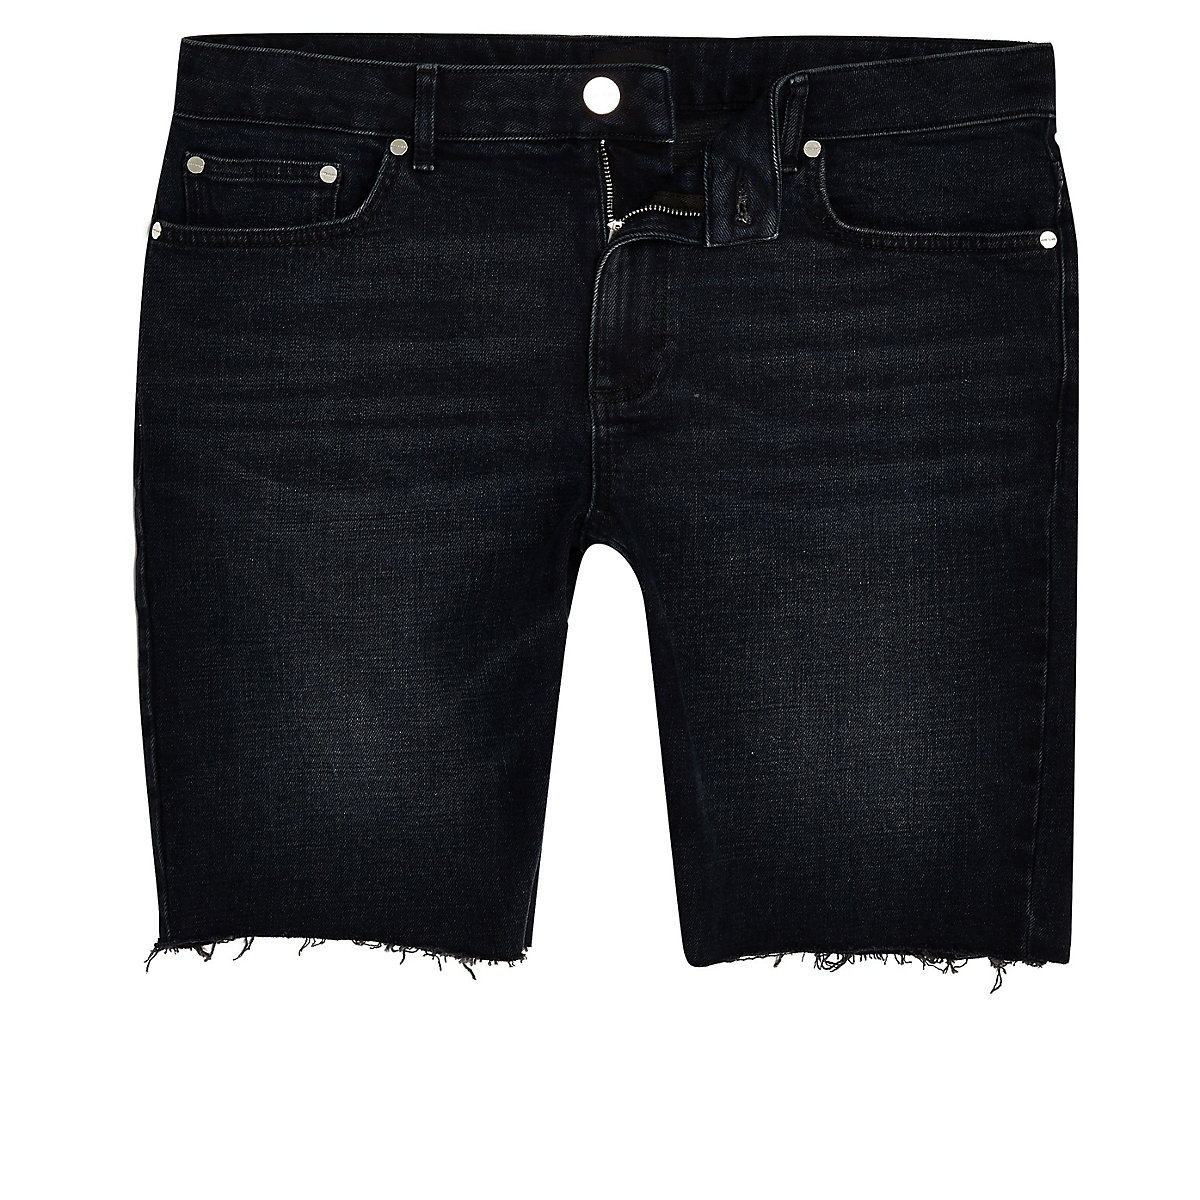 Big and Tall blue black skinny shorts